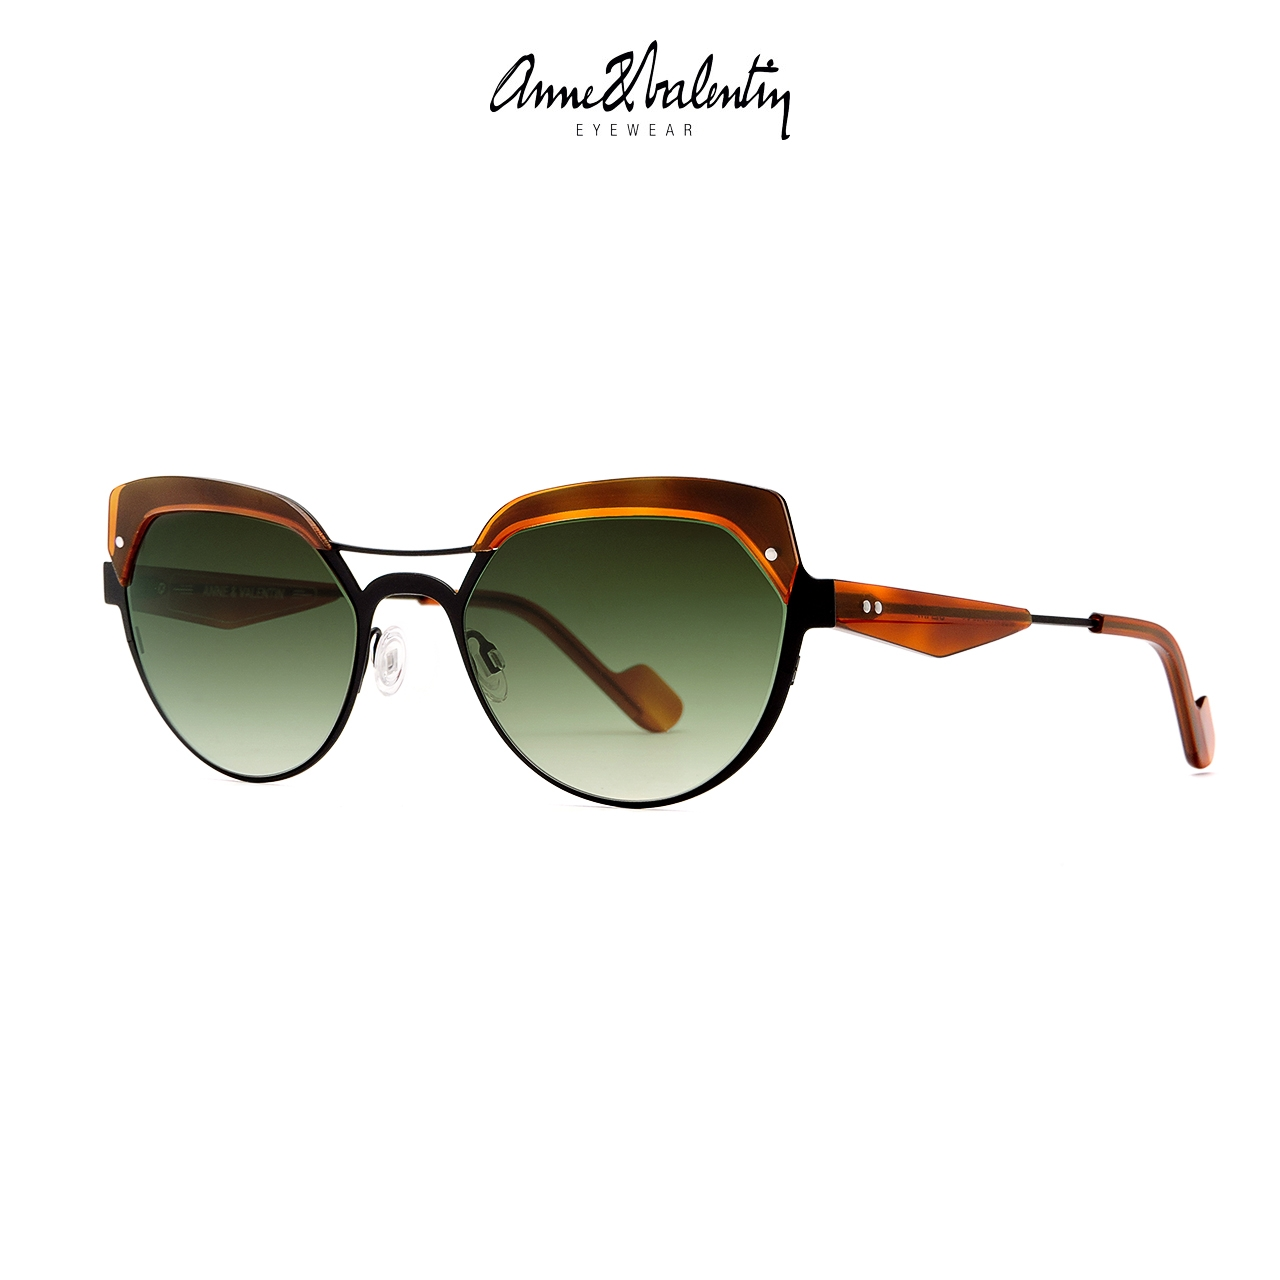 Best Place Sale Online Wholesale Price Sale Online Anne & Valentin Slam sunglasses Looking For Discount Wiki Clearance Low Price Fee Shipping 3kleKE